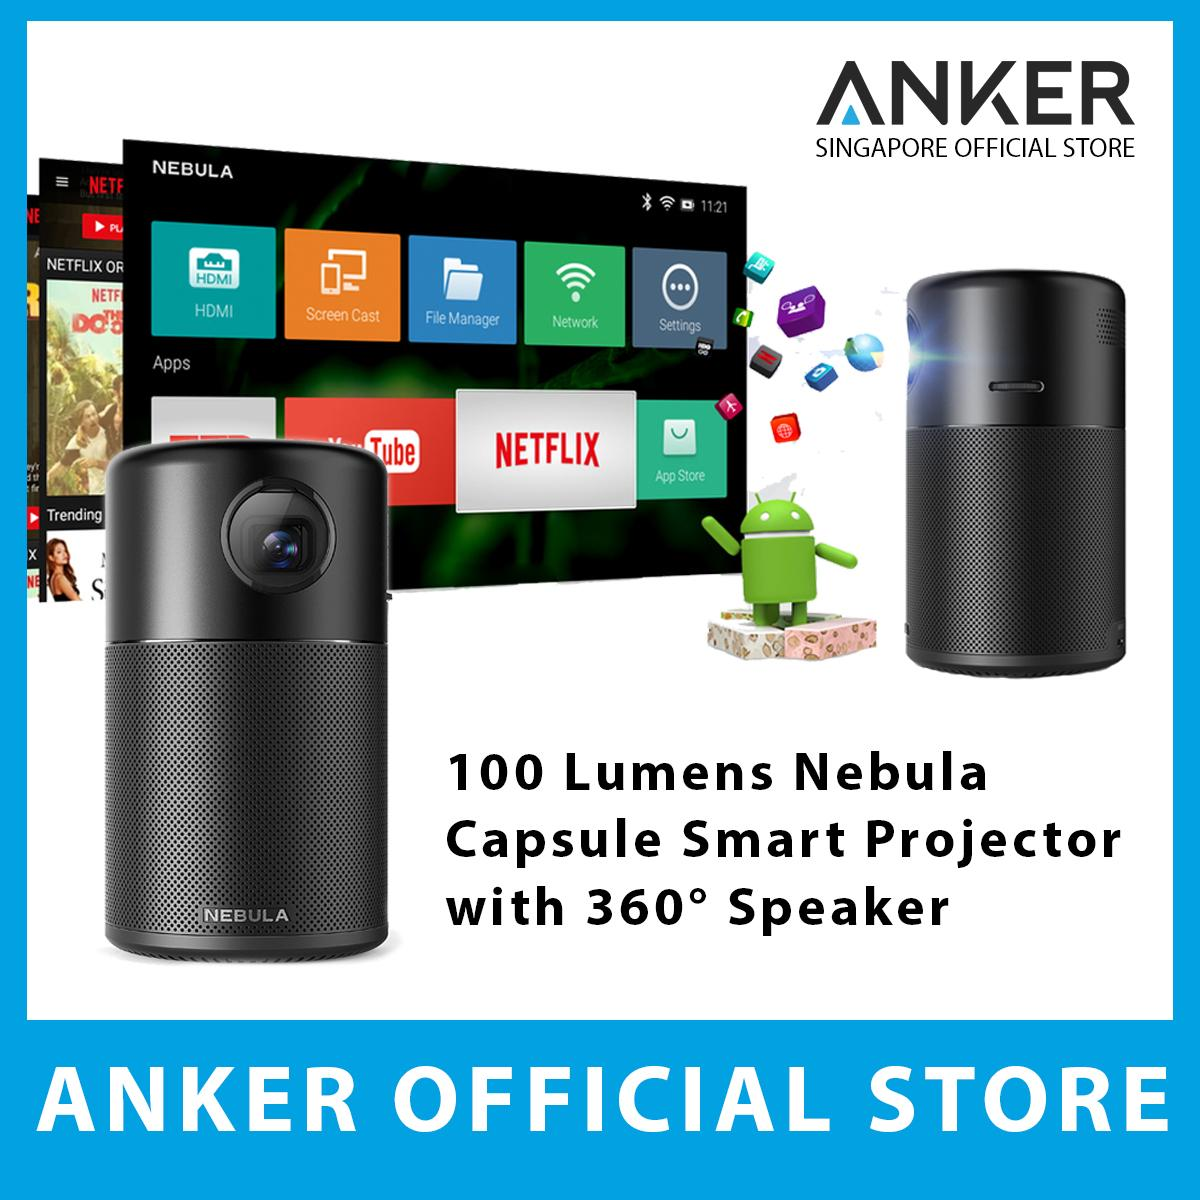 Top Rated Anker 100 Lumens Nebula Capsule Portable Smart Projector With 360° Speaker